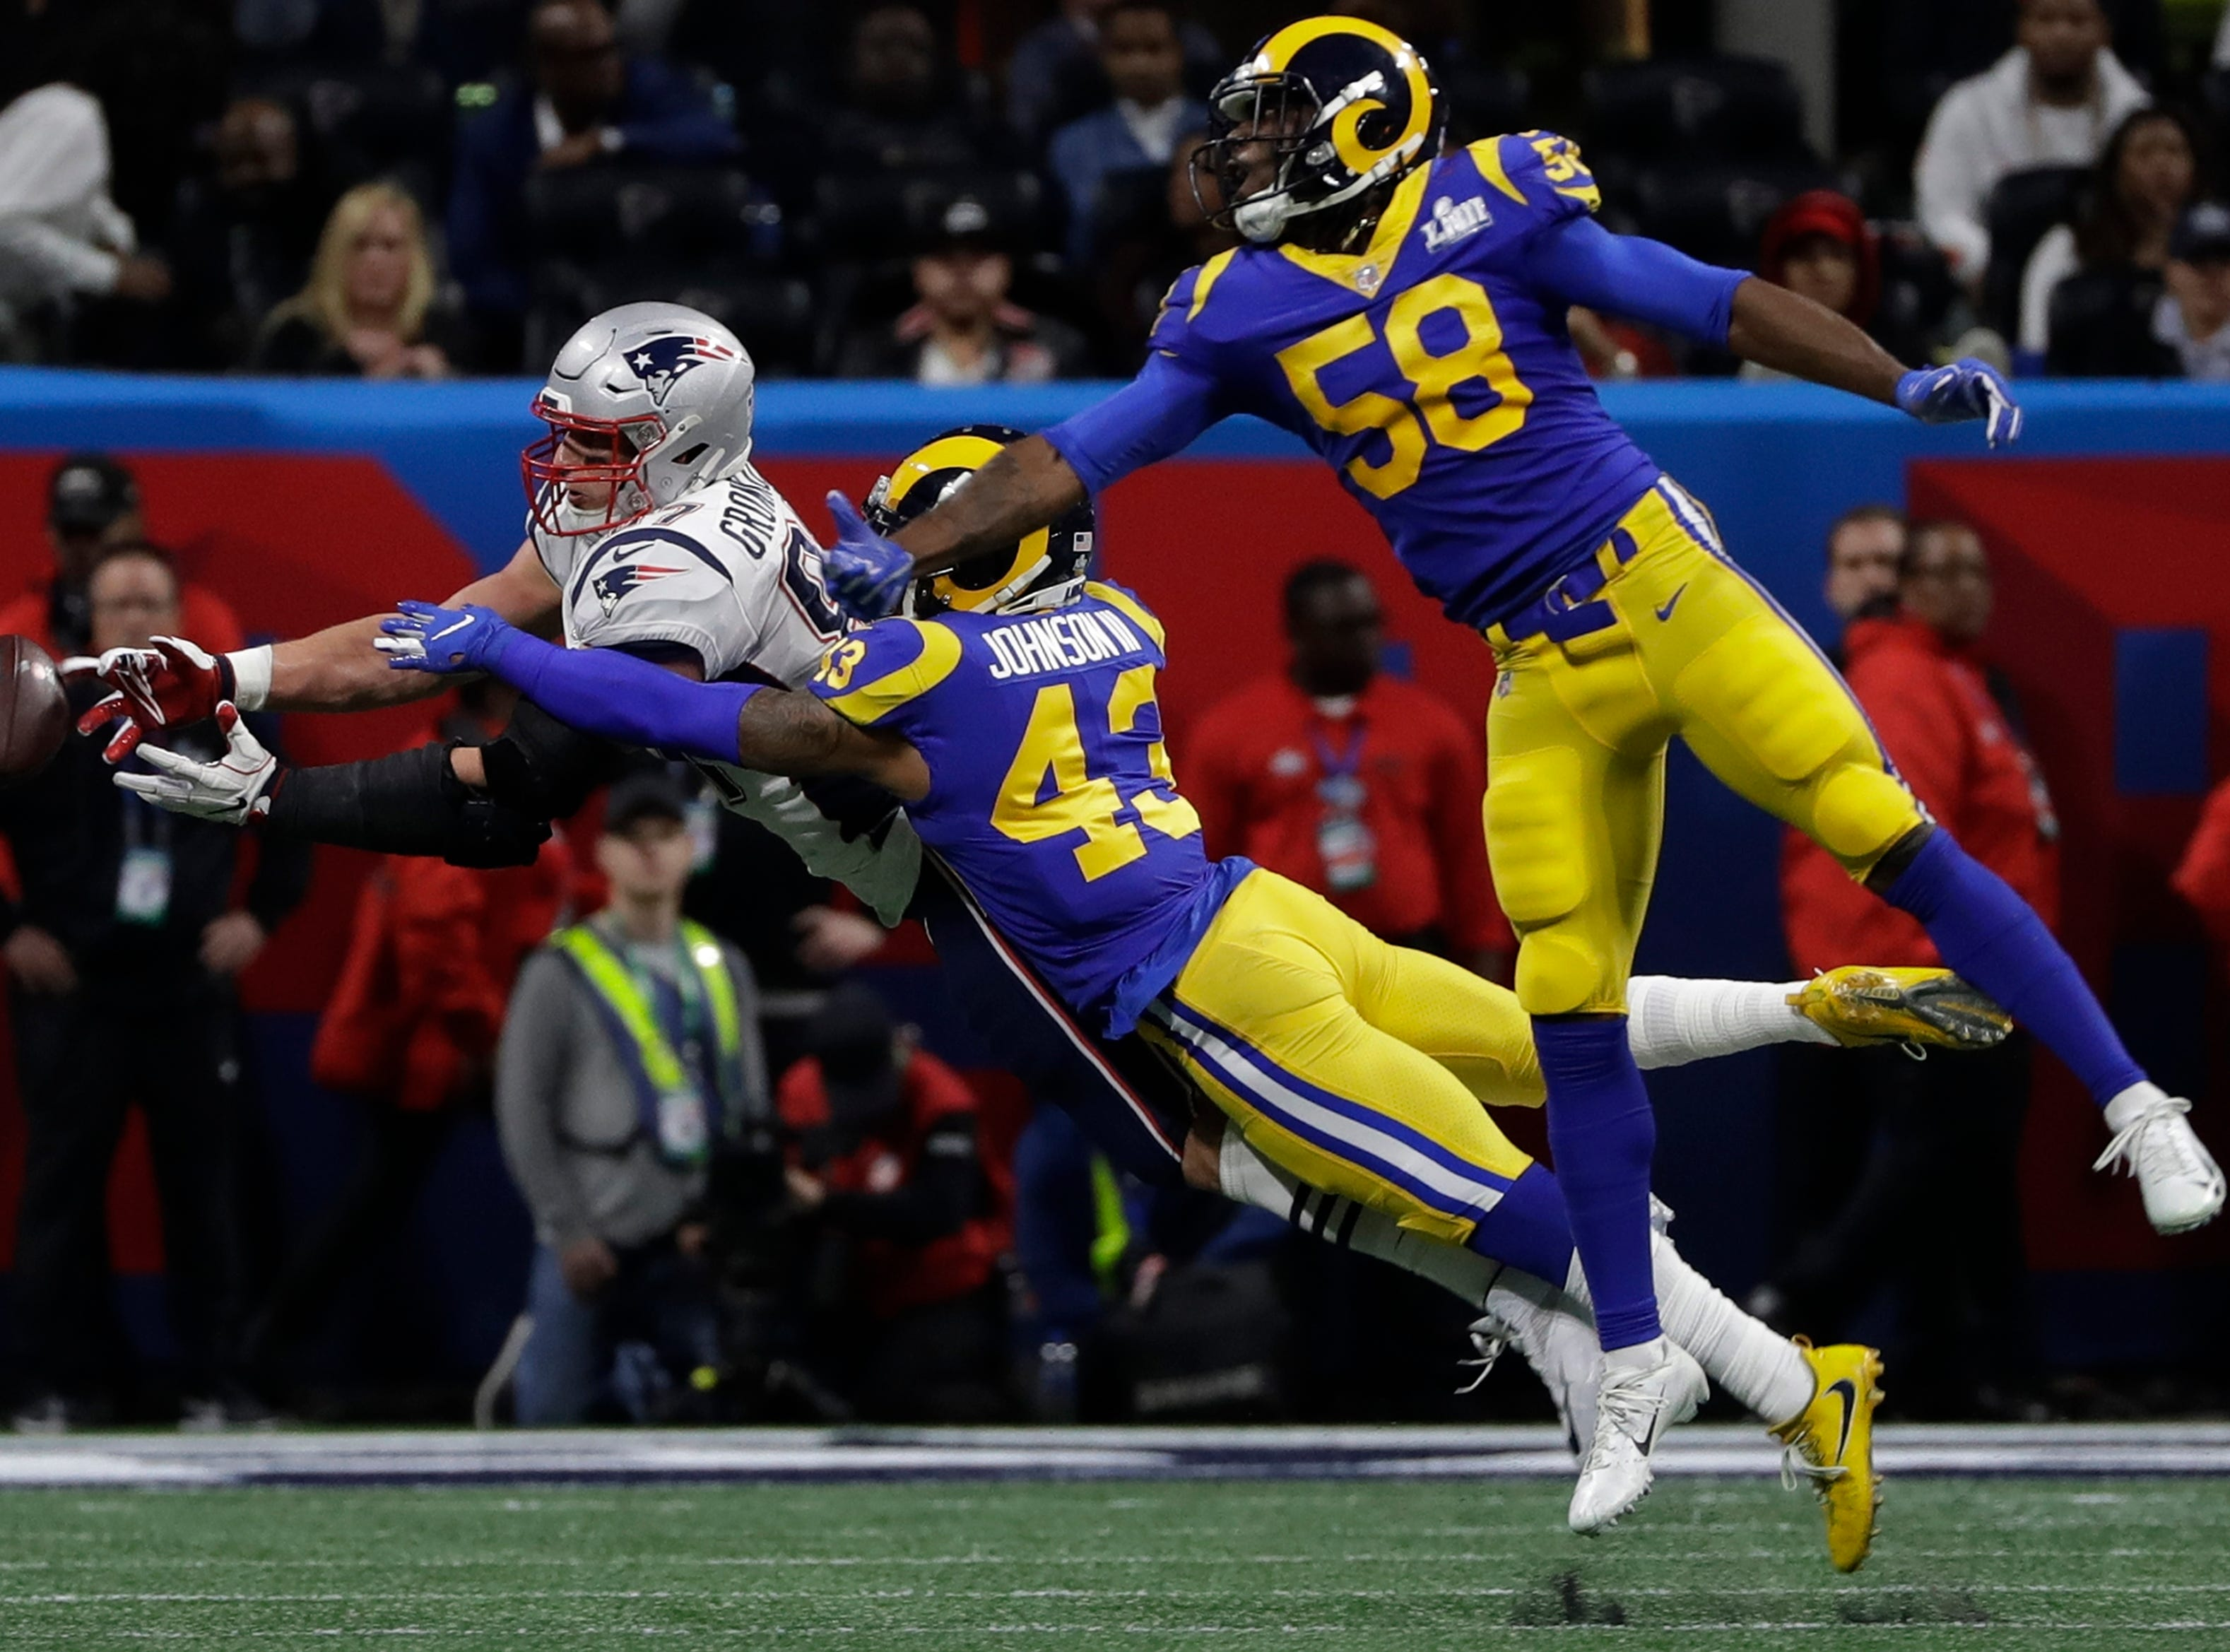 New England Patriots' Rob Gronkowski (87) stretches to catch a pass as Los Angeles Rams' Cory Littleton (58) and John Johnson III (43) defend, during the first half.